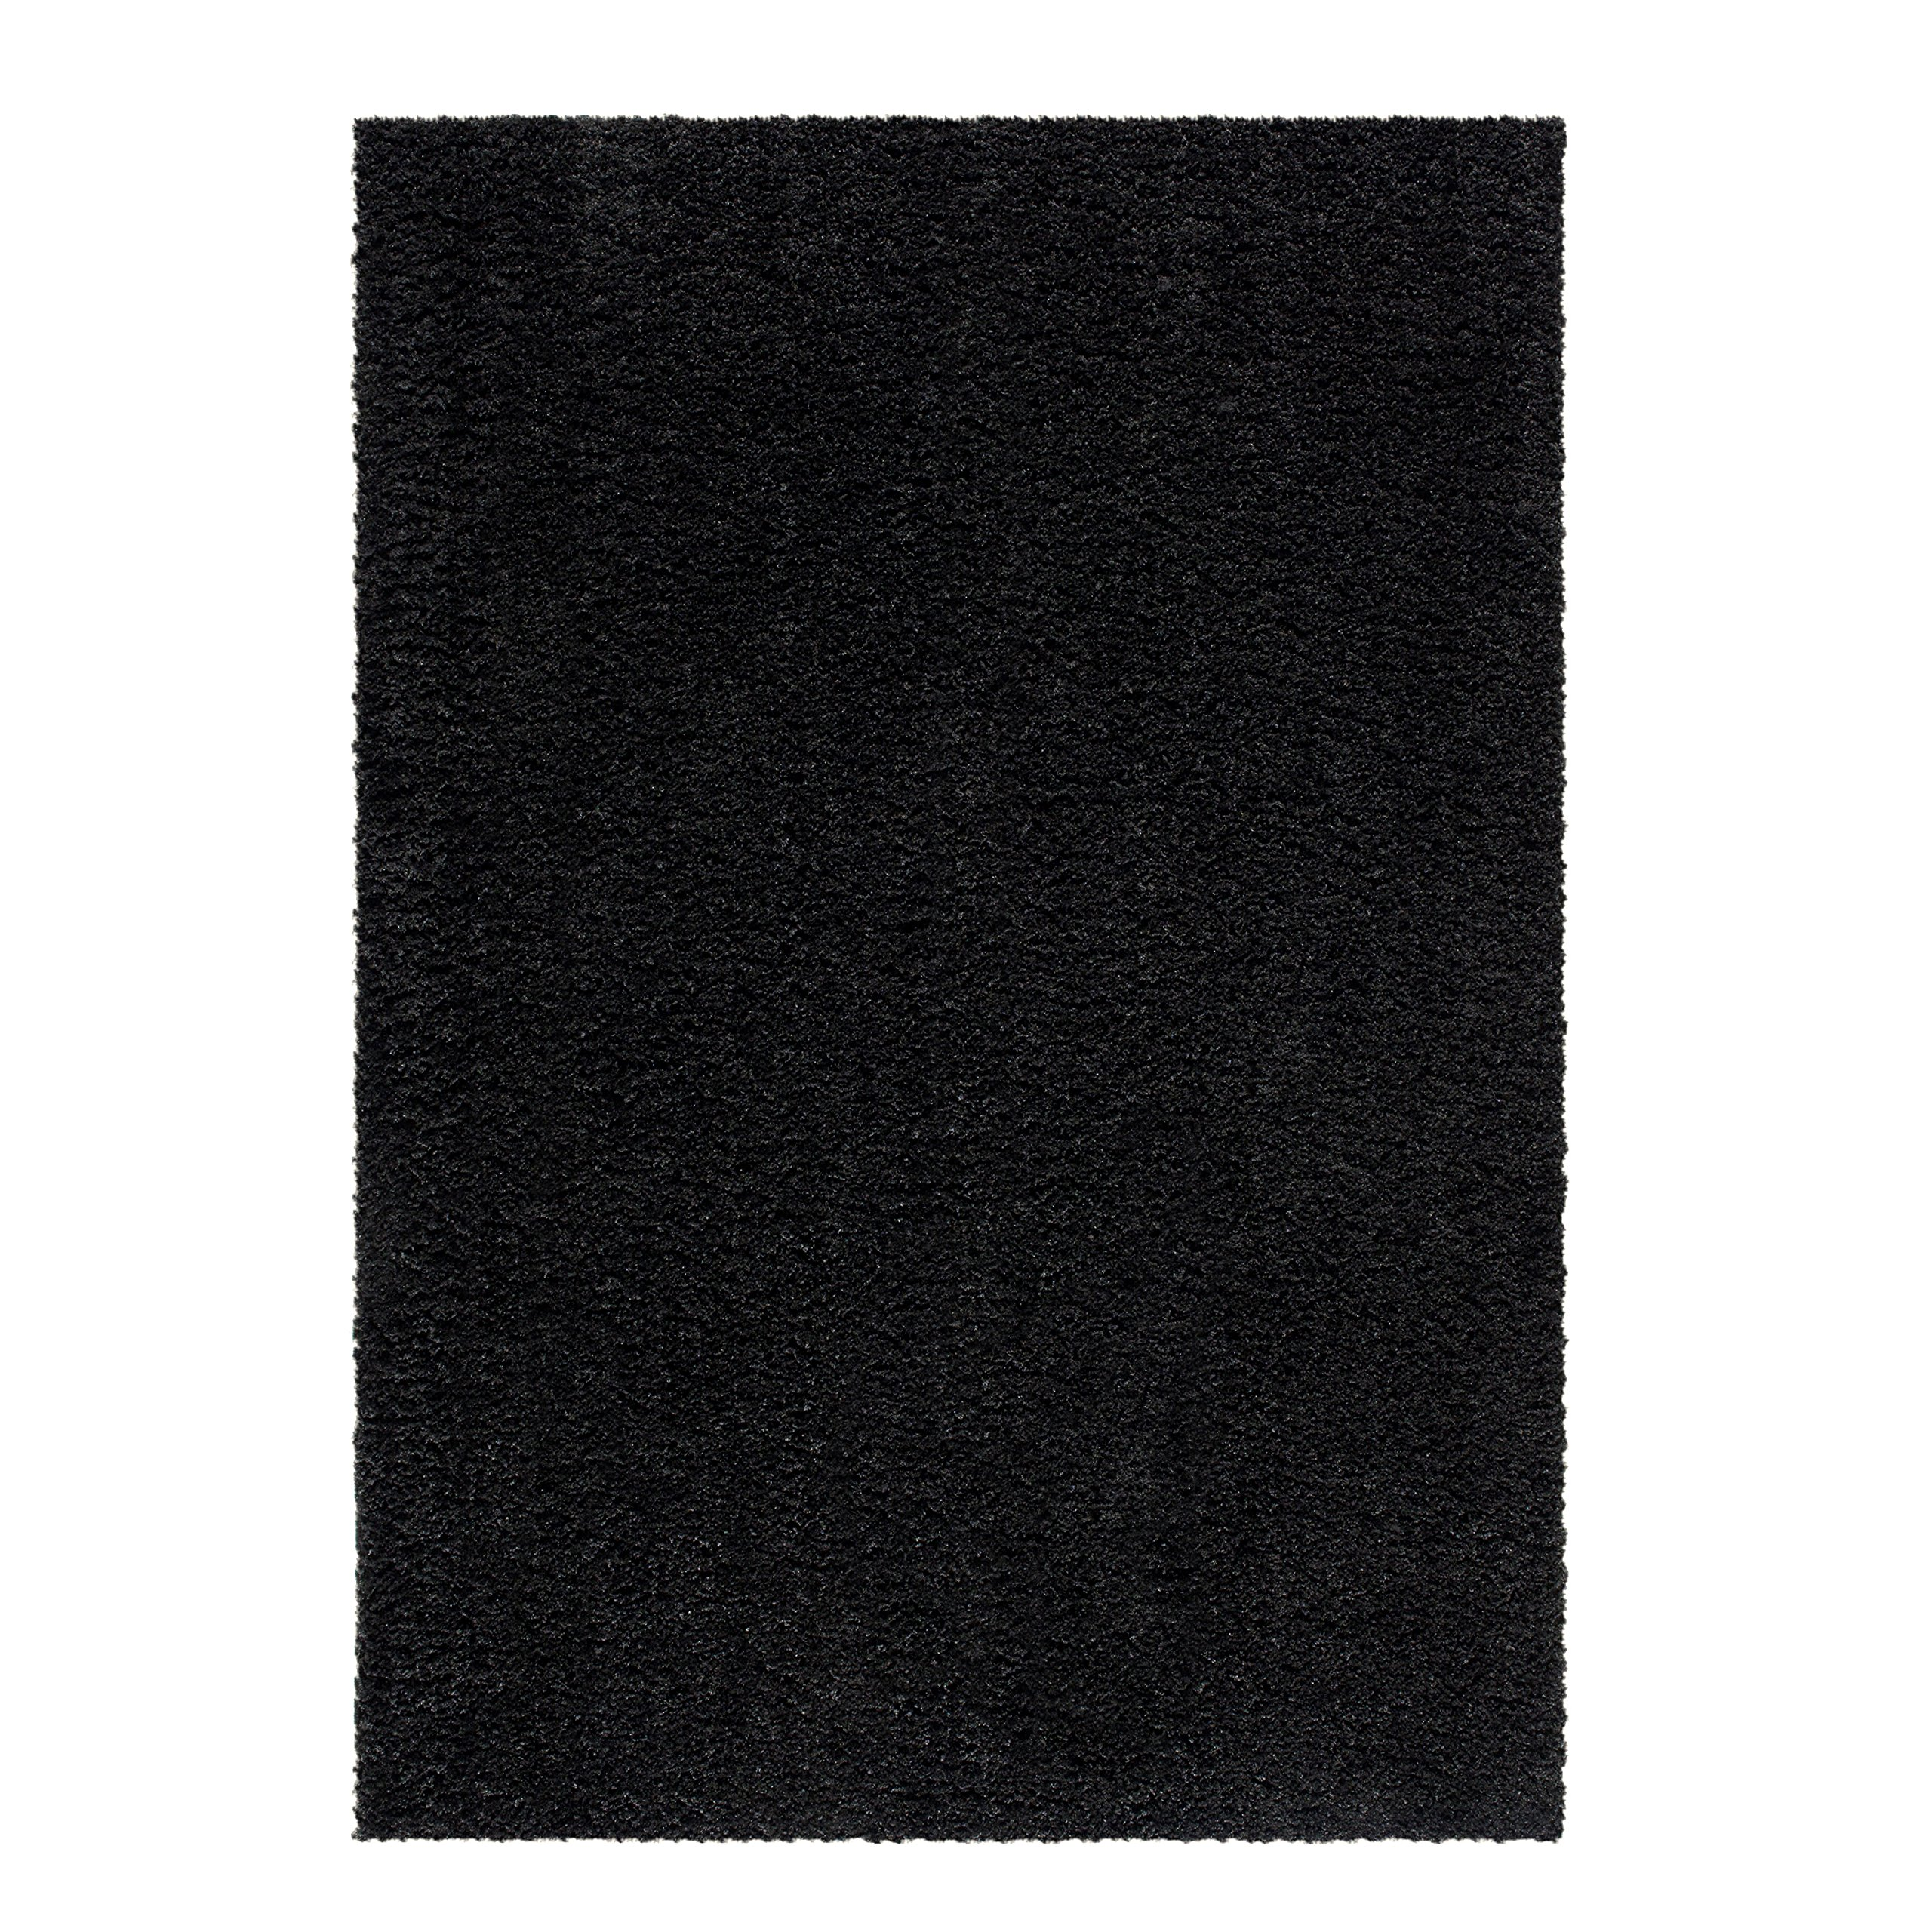 Maples Rugs Area Rugs, [Made in USA][Catriona] 7' x 10' Non Slip Padded Large Rug for Living Room, Bedroom, and Dining Room - Rich Black